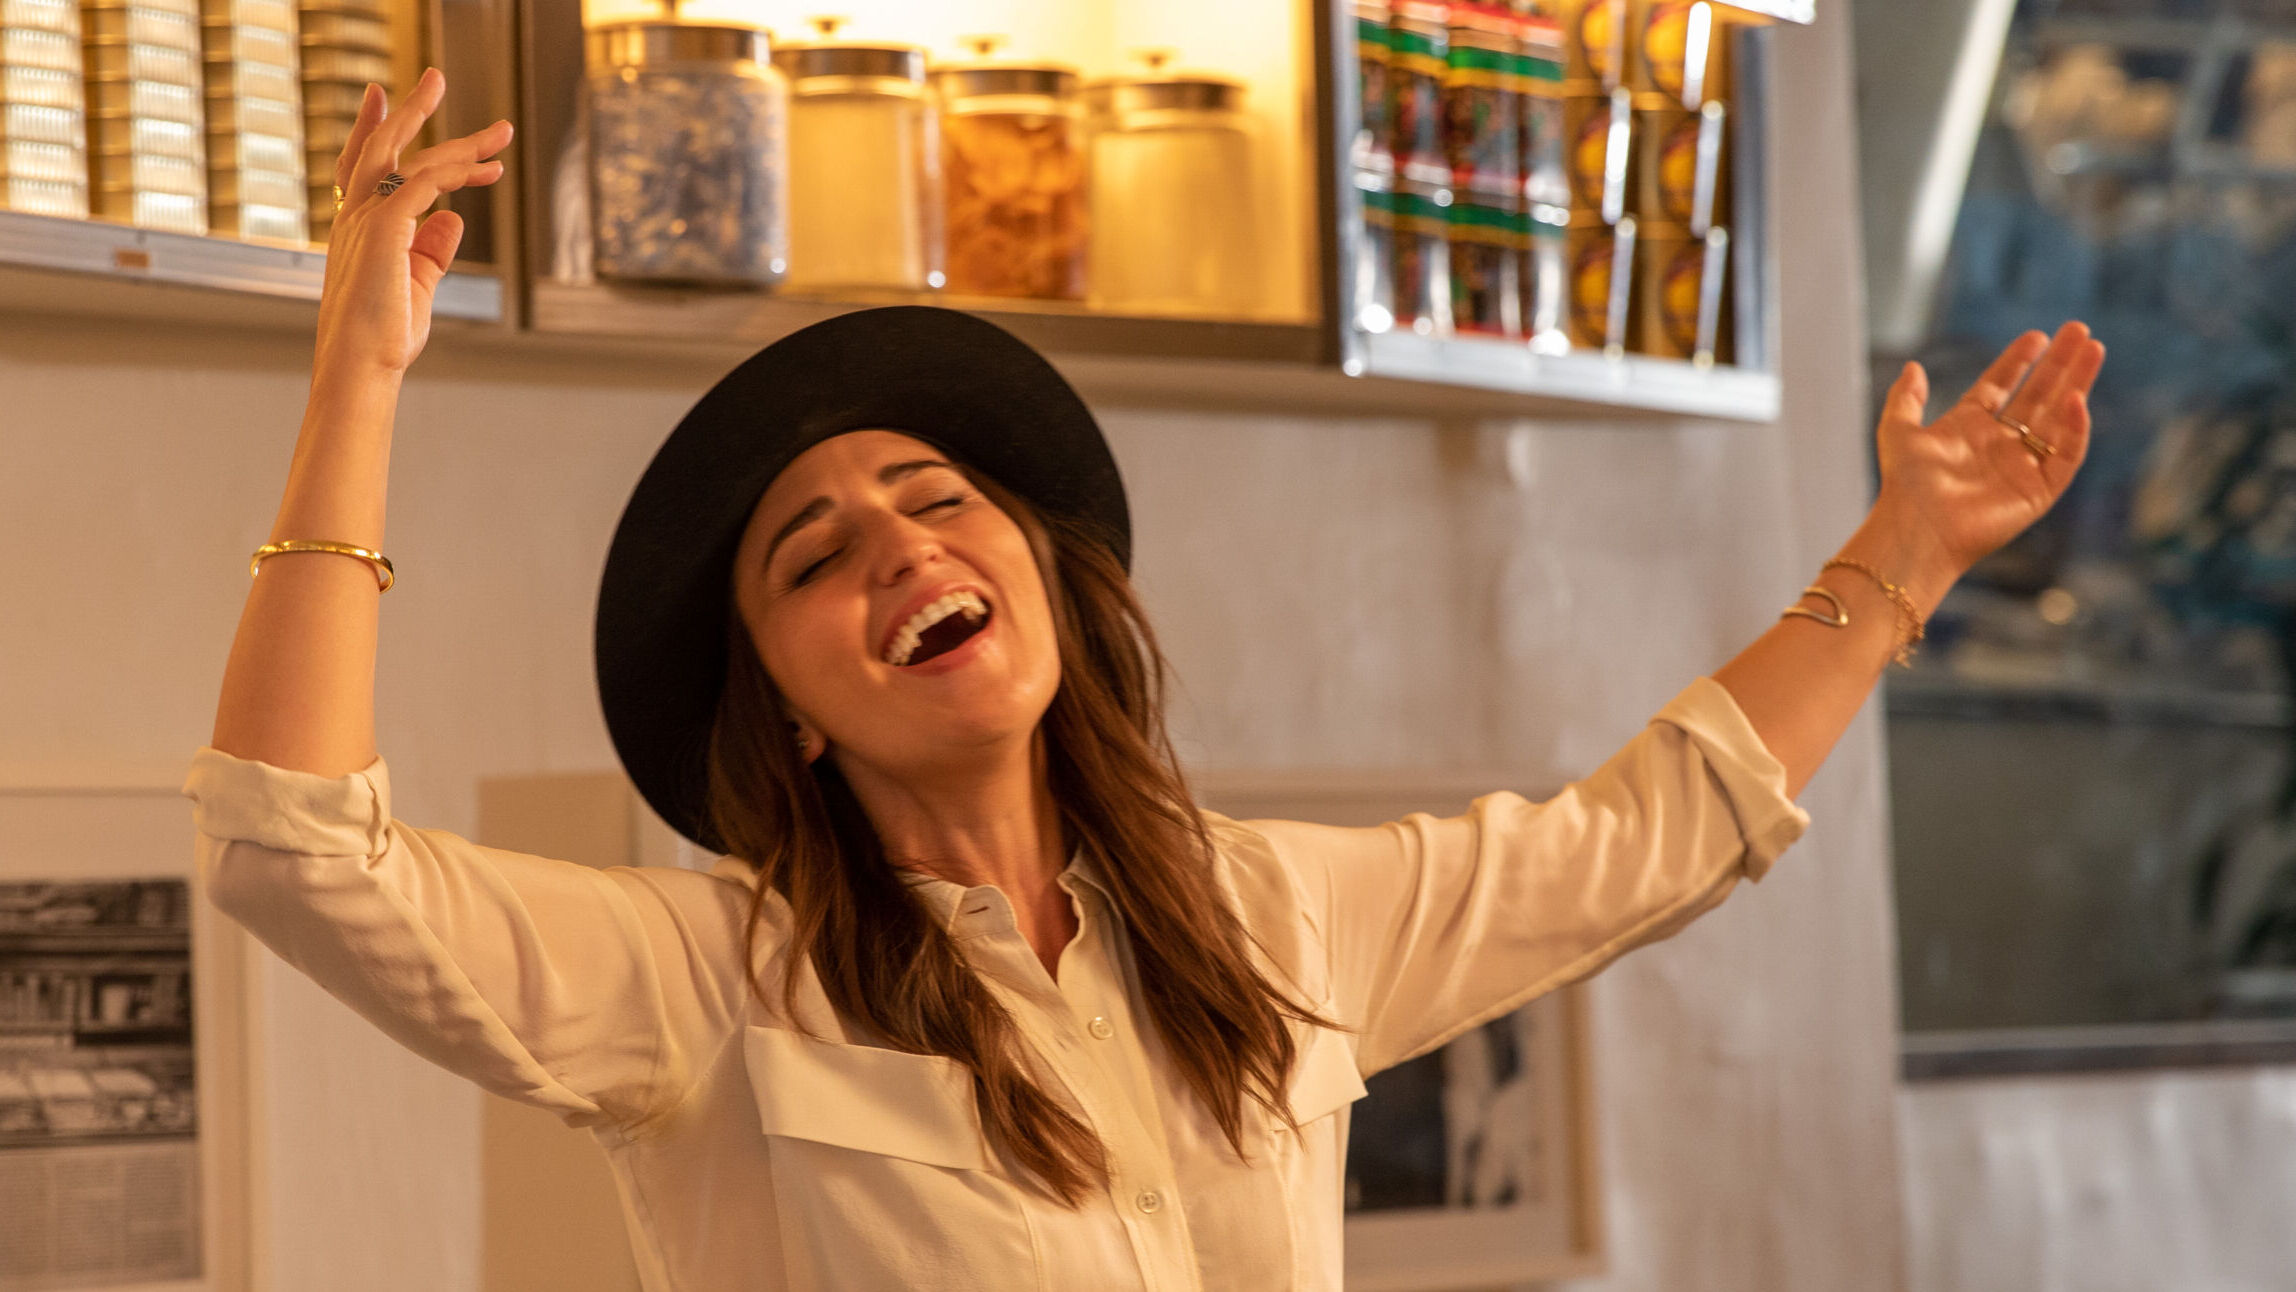 A woman in long white shirt, black pants and black-rimmed hat sings with outstretched arms in a shop that has lit display cases high on the wall.